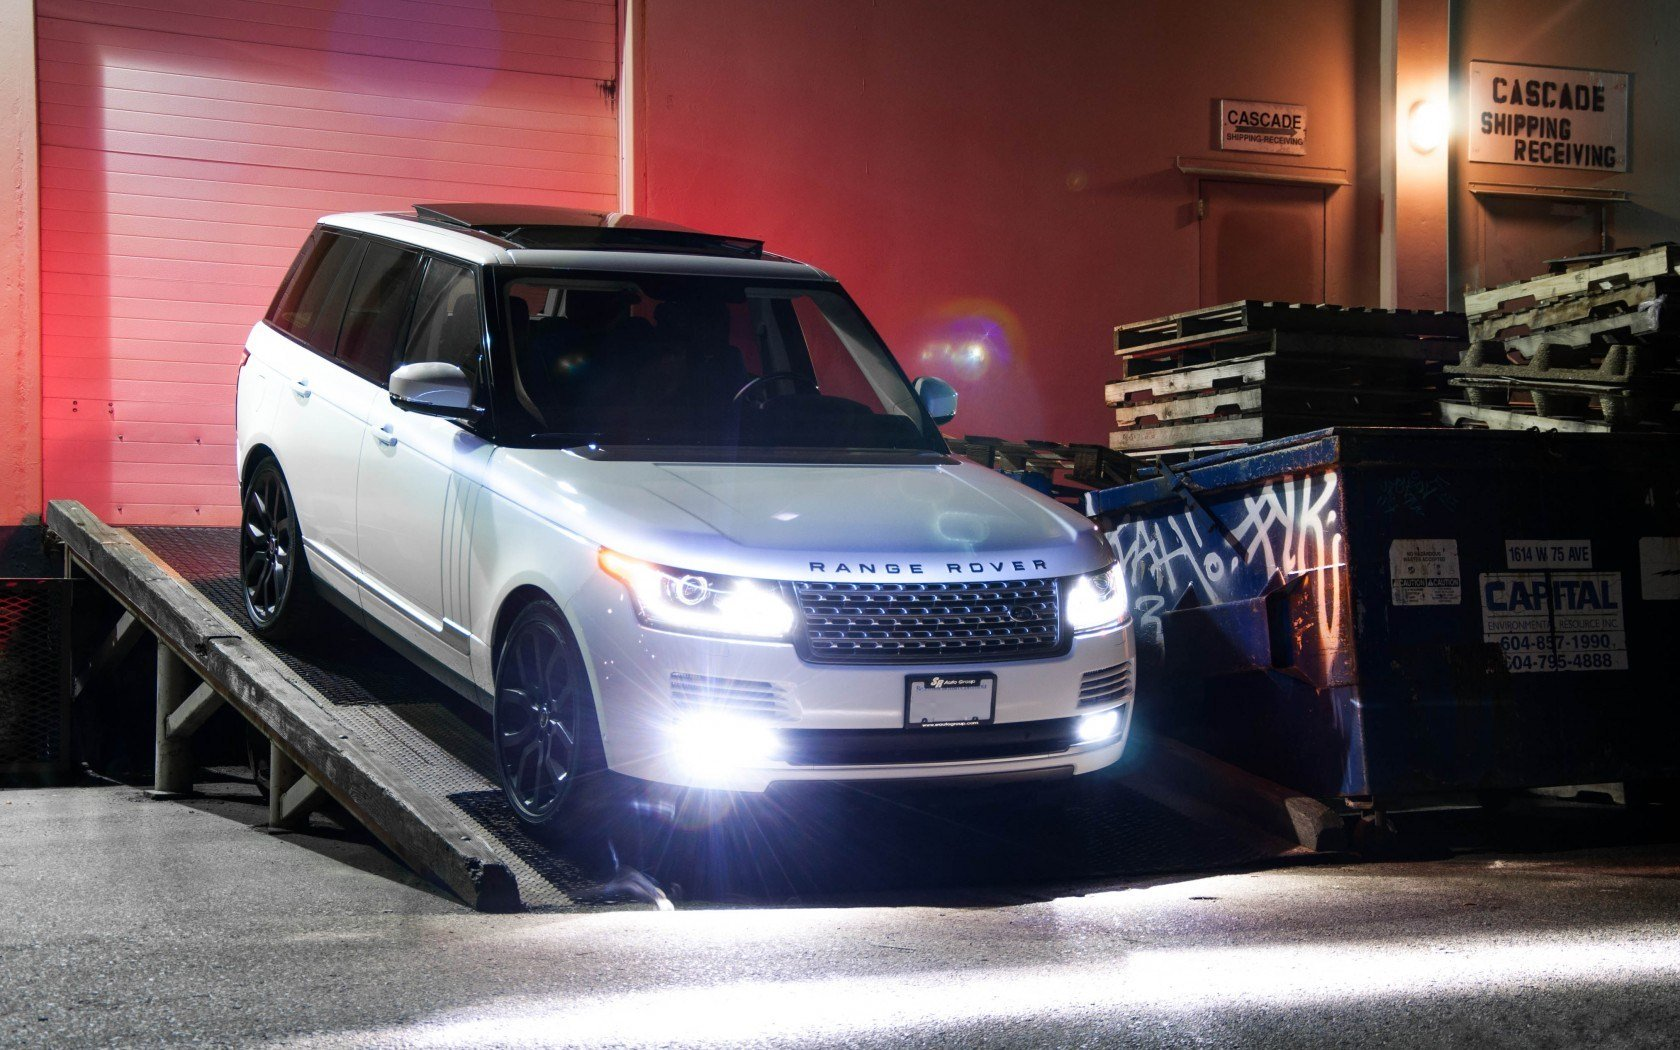 Best Land Rover Range Rover wallpaper ID:68486 for High Resolution hd 1680x1050 computer